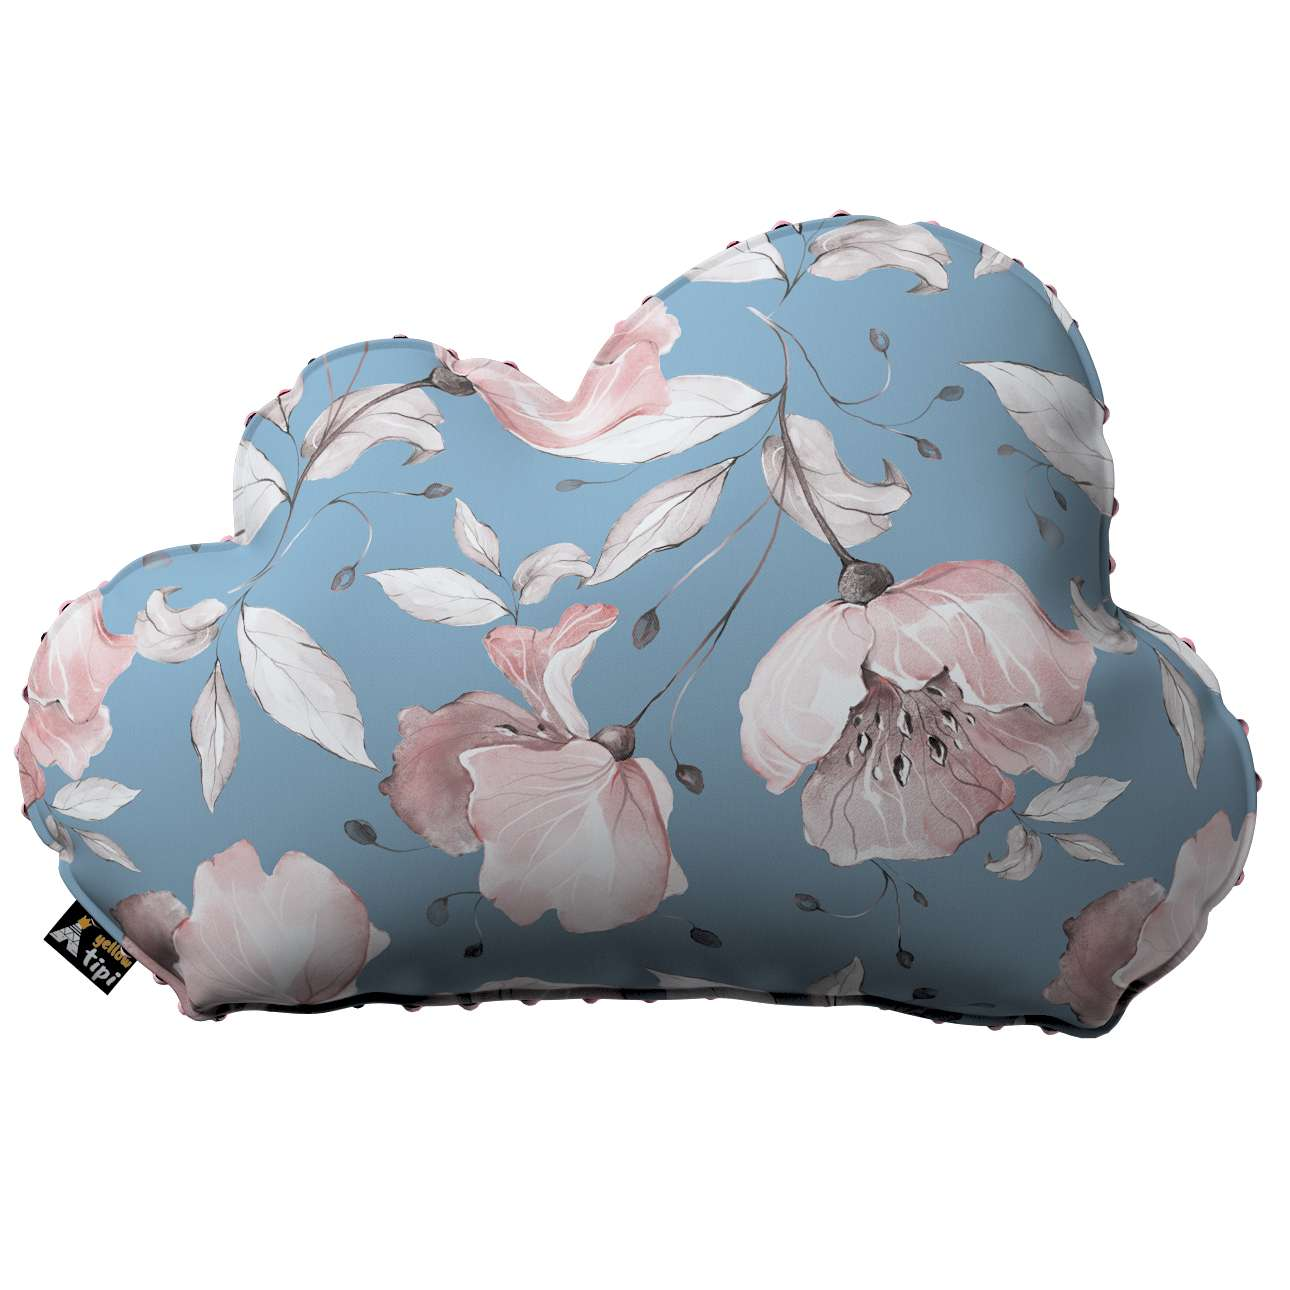 Kissen Soft Cloud aus Minky von der Kollektion Magic Collection, Stoff: 500-18